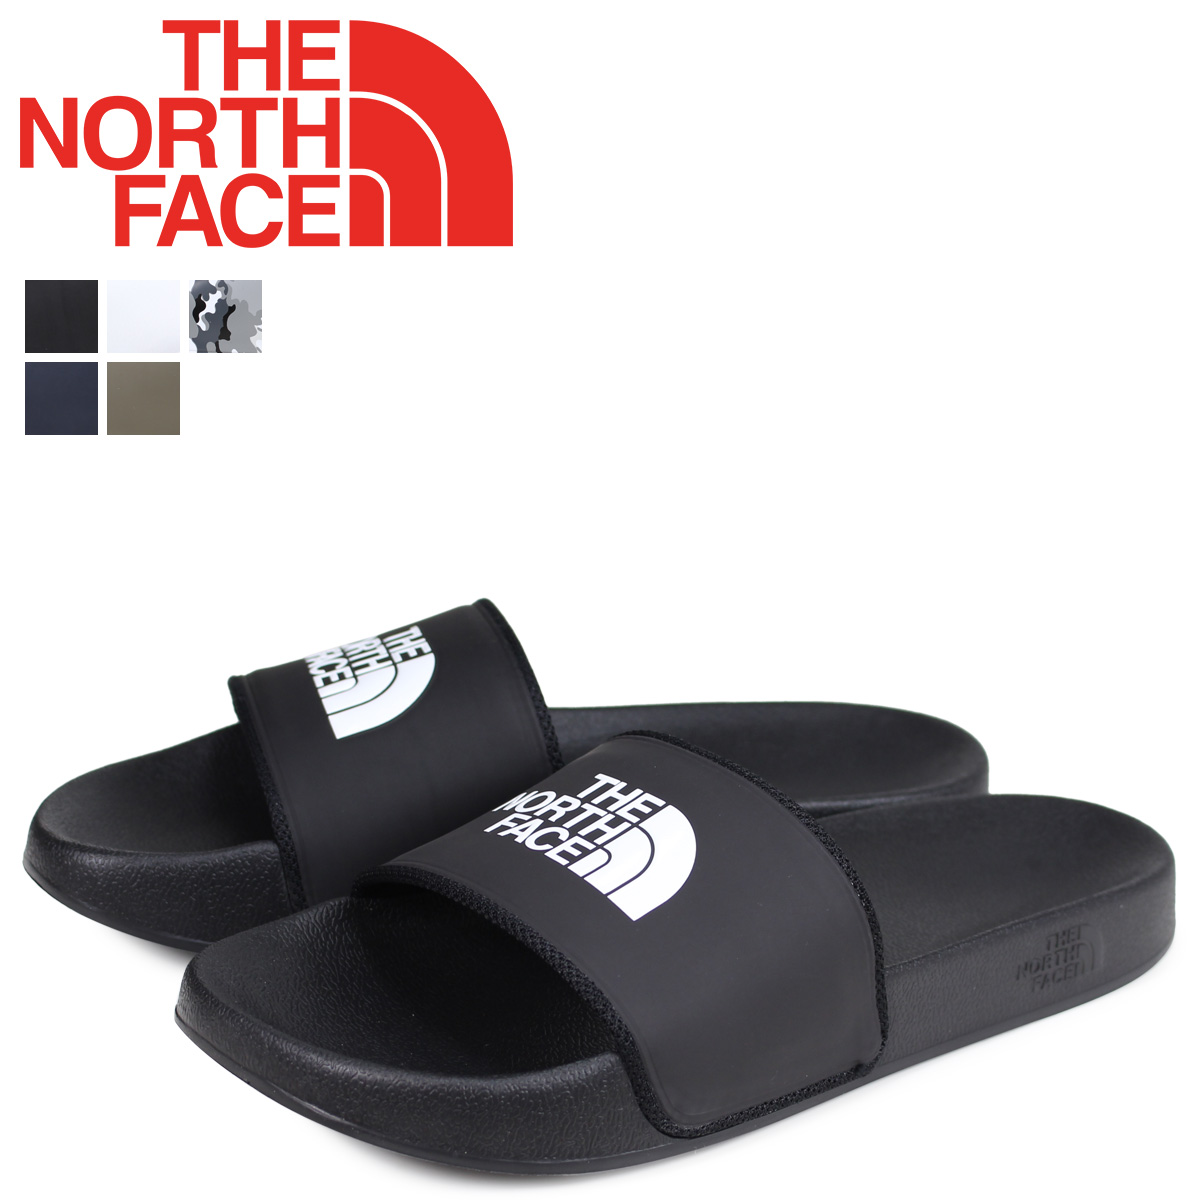 f935e3529 North Face THE NORTH FACE base camp sandals slide sandals men MENS BASE  CAMP SLIDE 2 NF0A3FWO